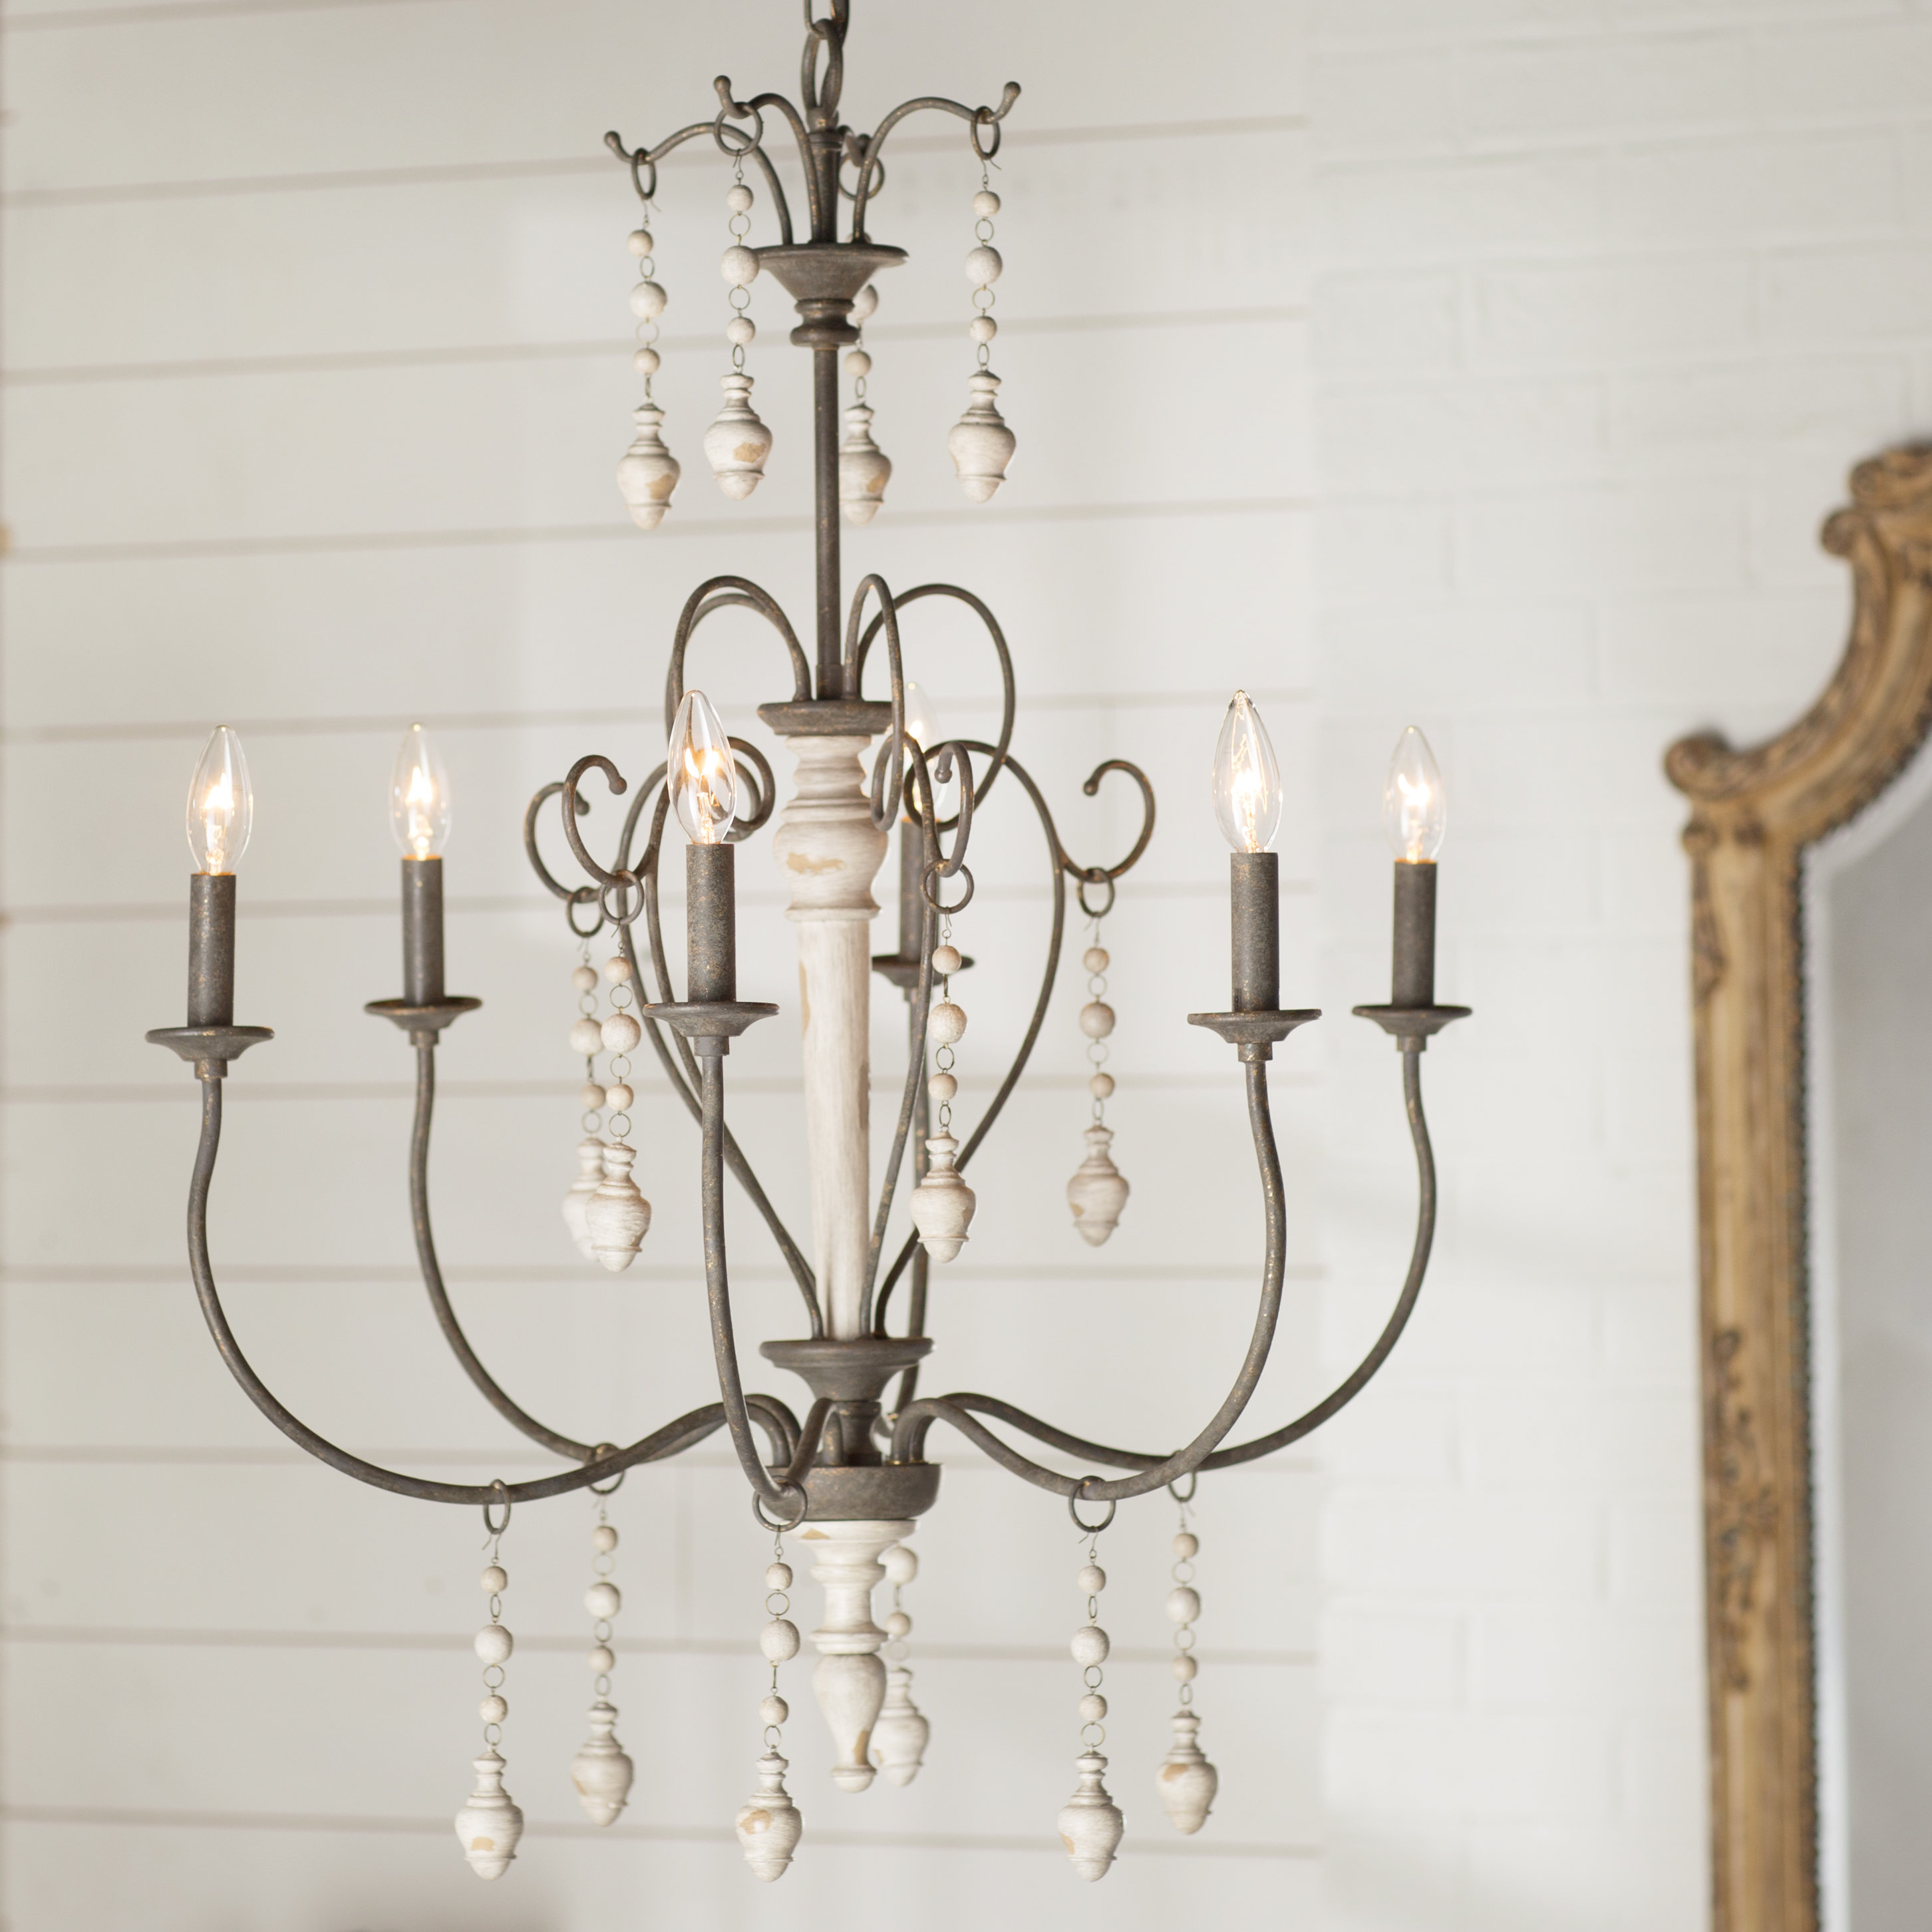 Shaylee 6 Light Candle Style Chandeliers Within Preferred Bouchette Traditional 6 Light Candle Style Chandelier (View 22 of 25)